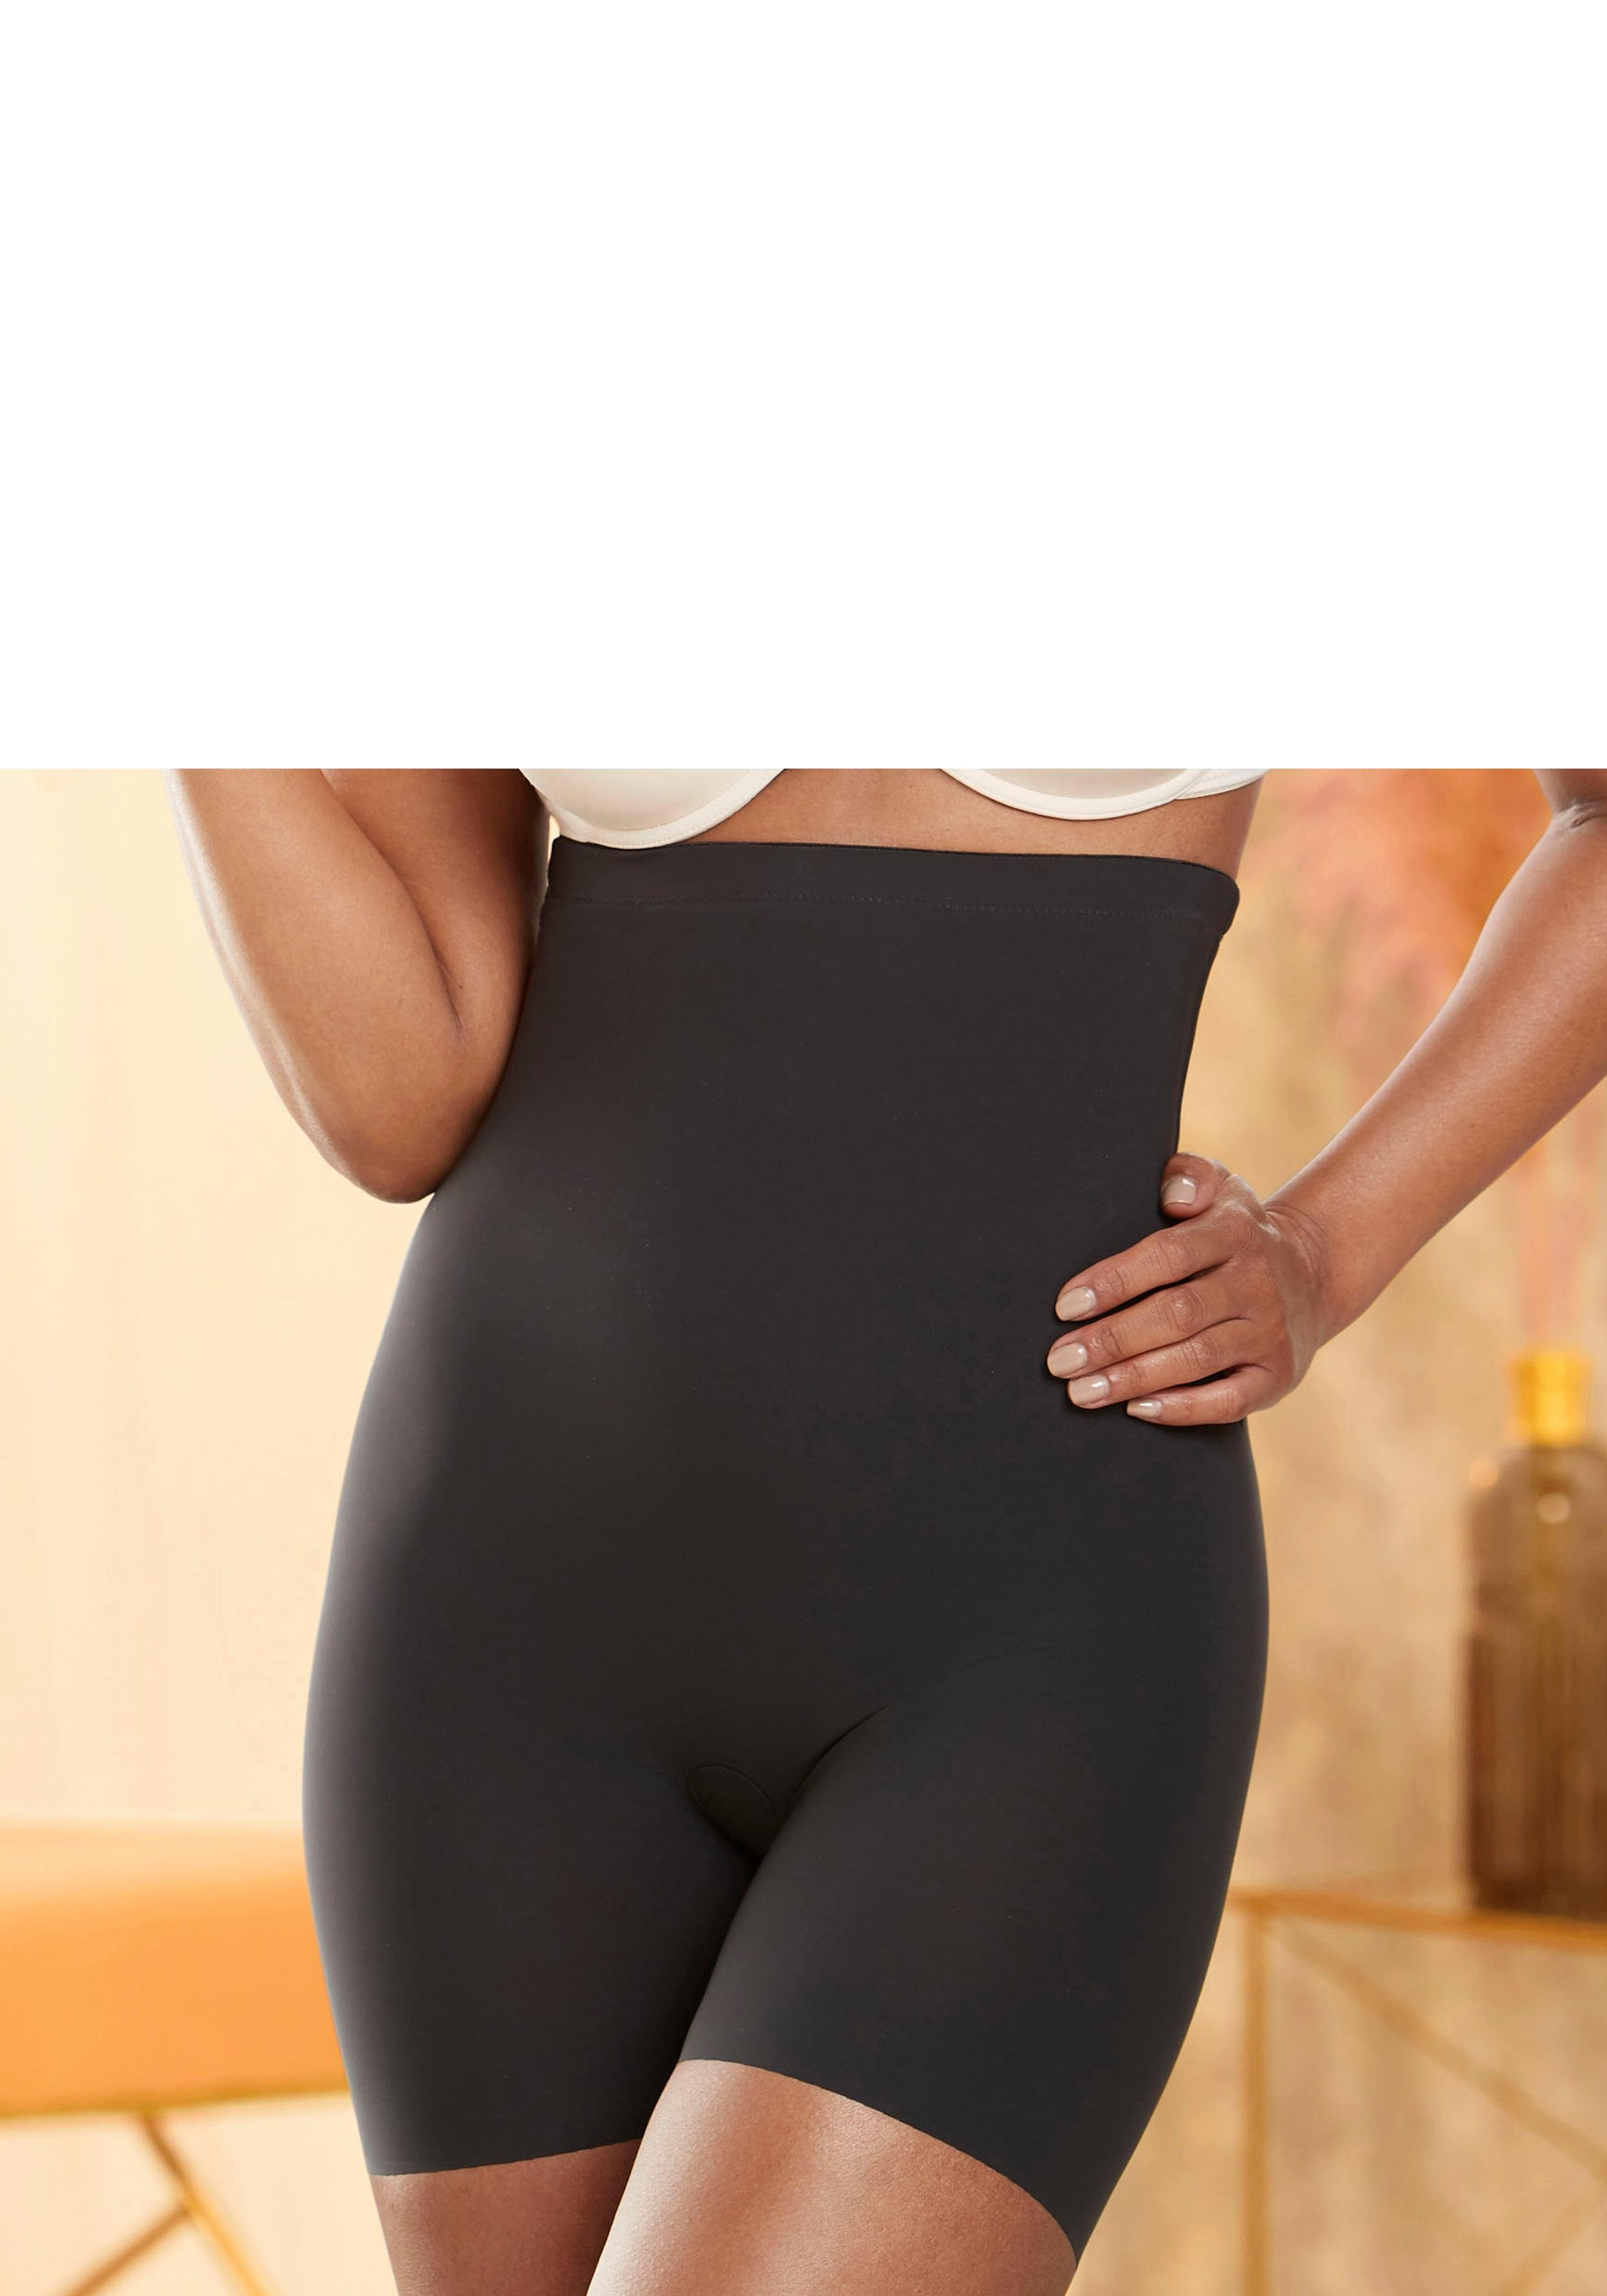 MAIDENFORM shapingbroek »High Waist Shorty« bij OTTO online kopen